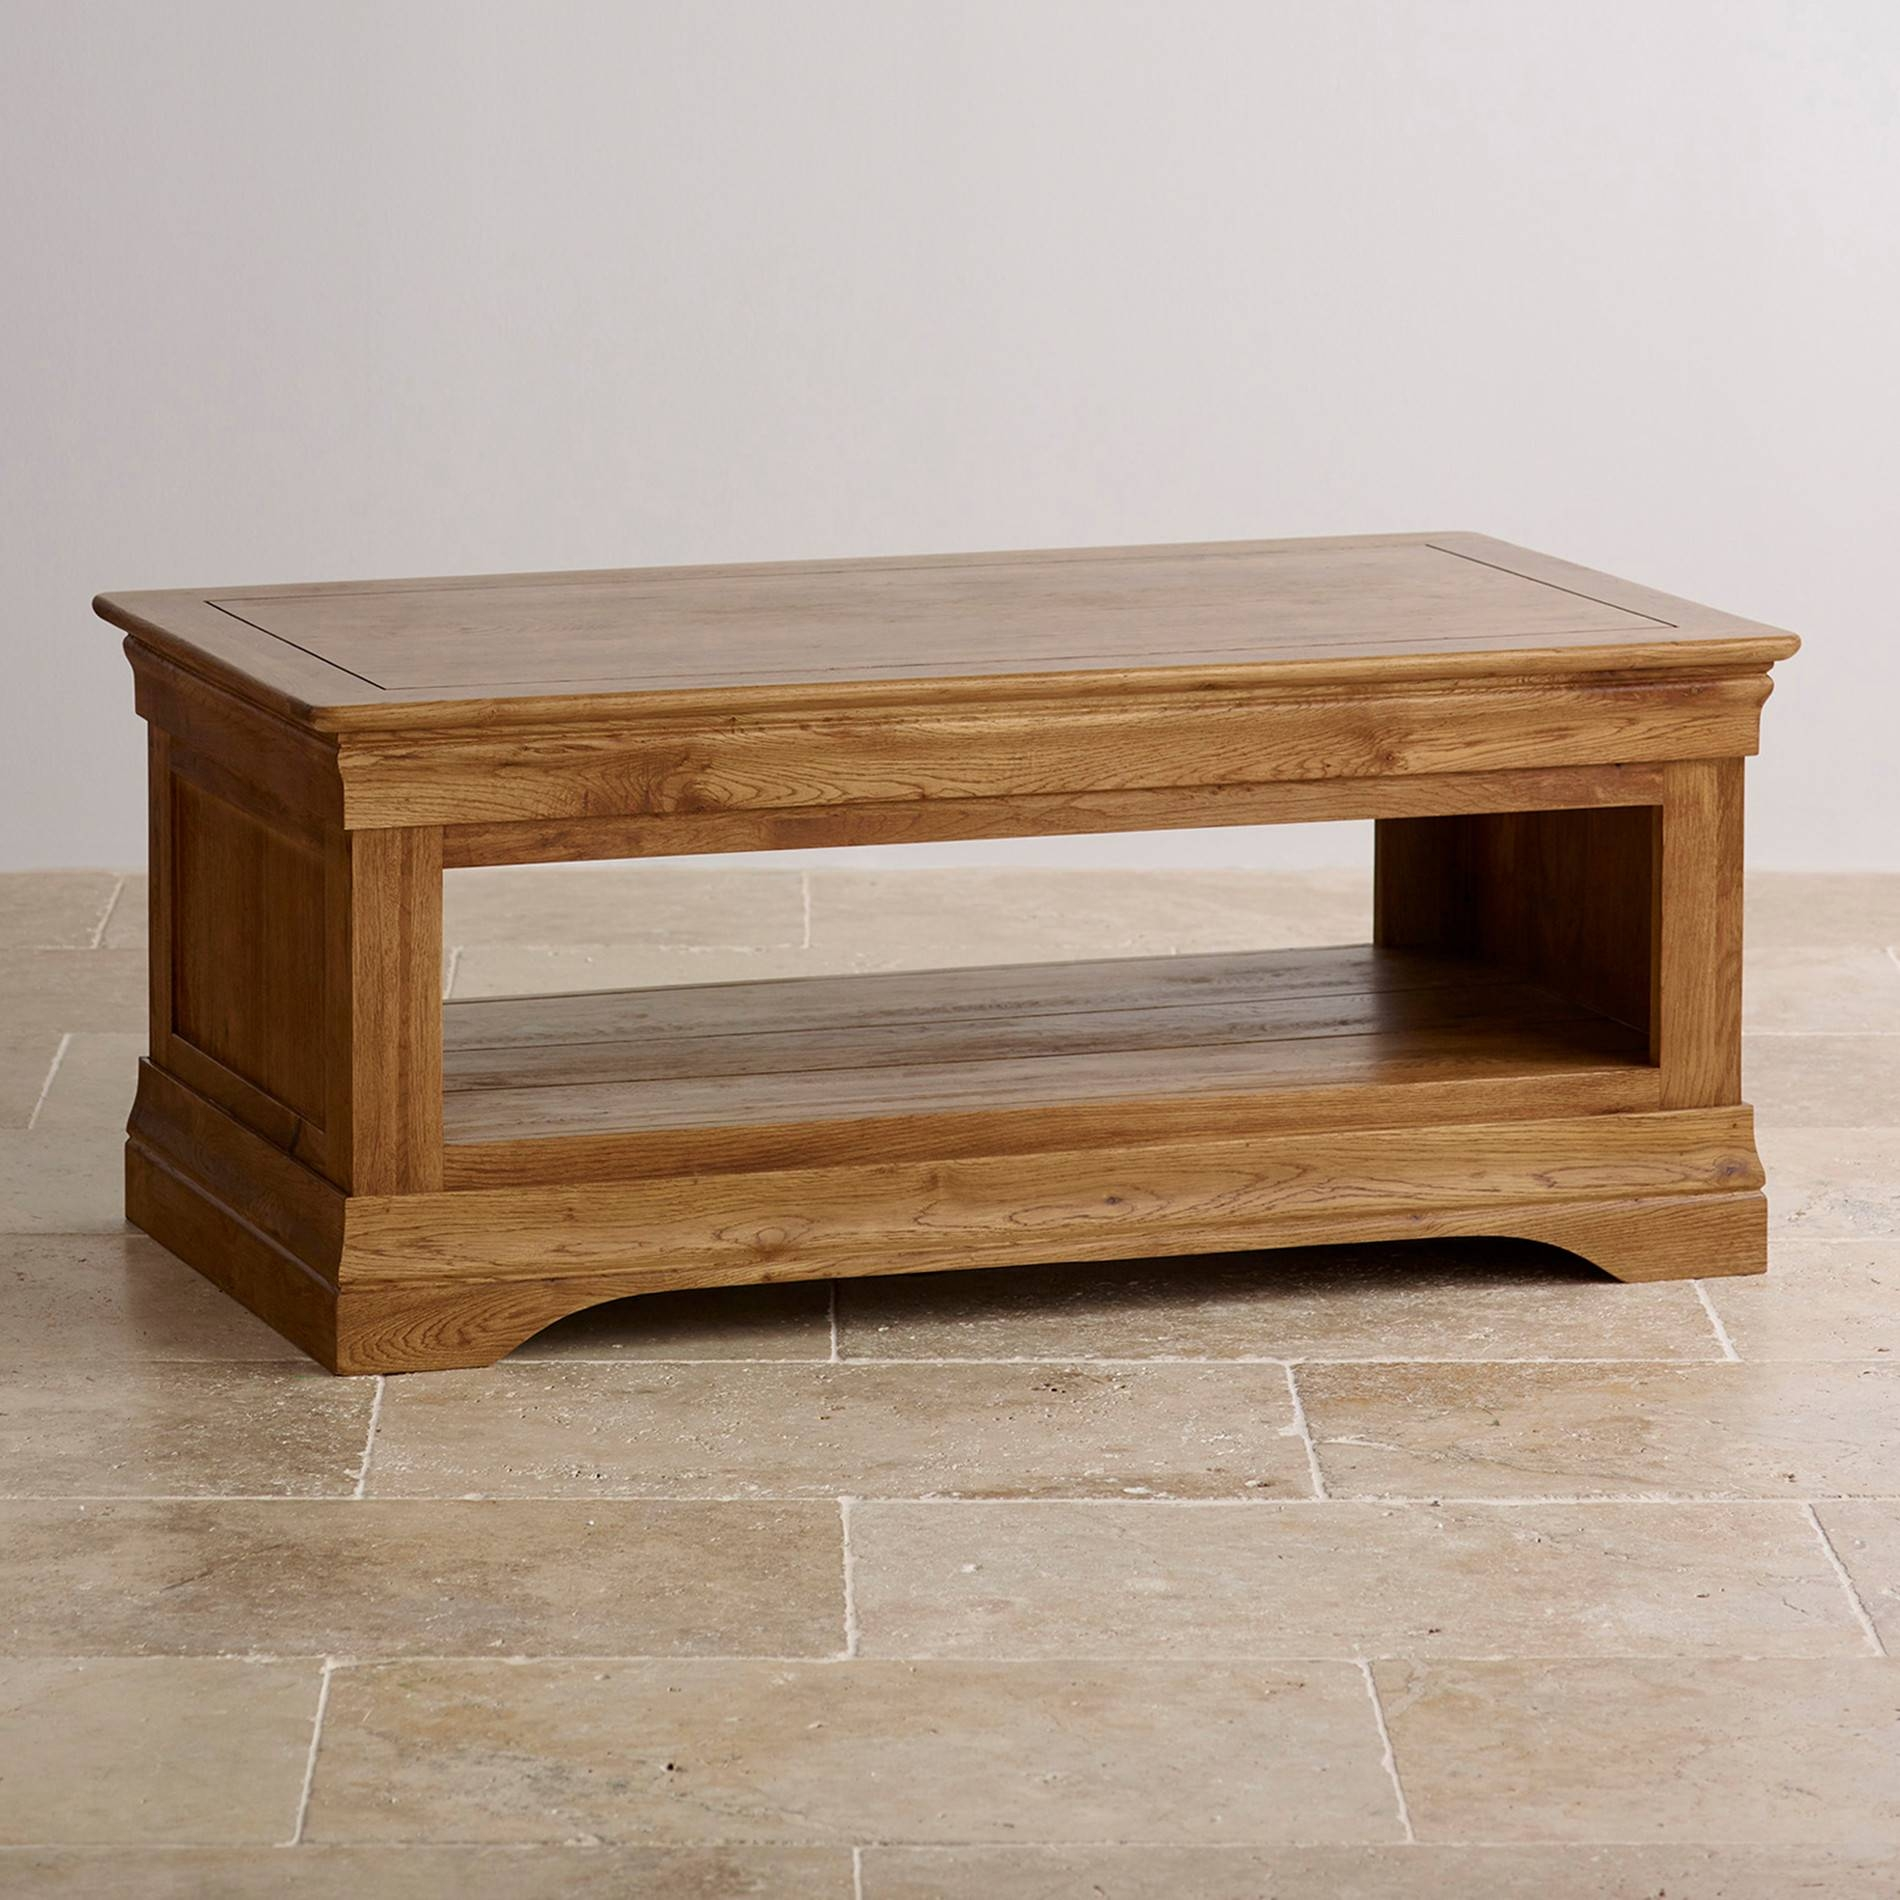 Coffee Tables: New Oak Coffee Tables Designs Rustic Oak Coffee throughout Solid Oak Coffee Table With Storage (Image 2 of 15)